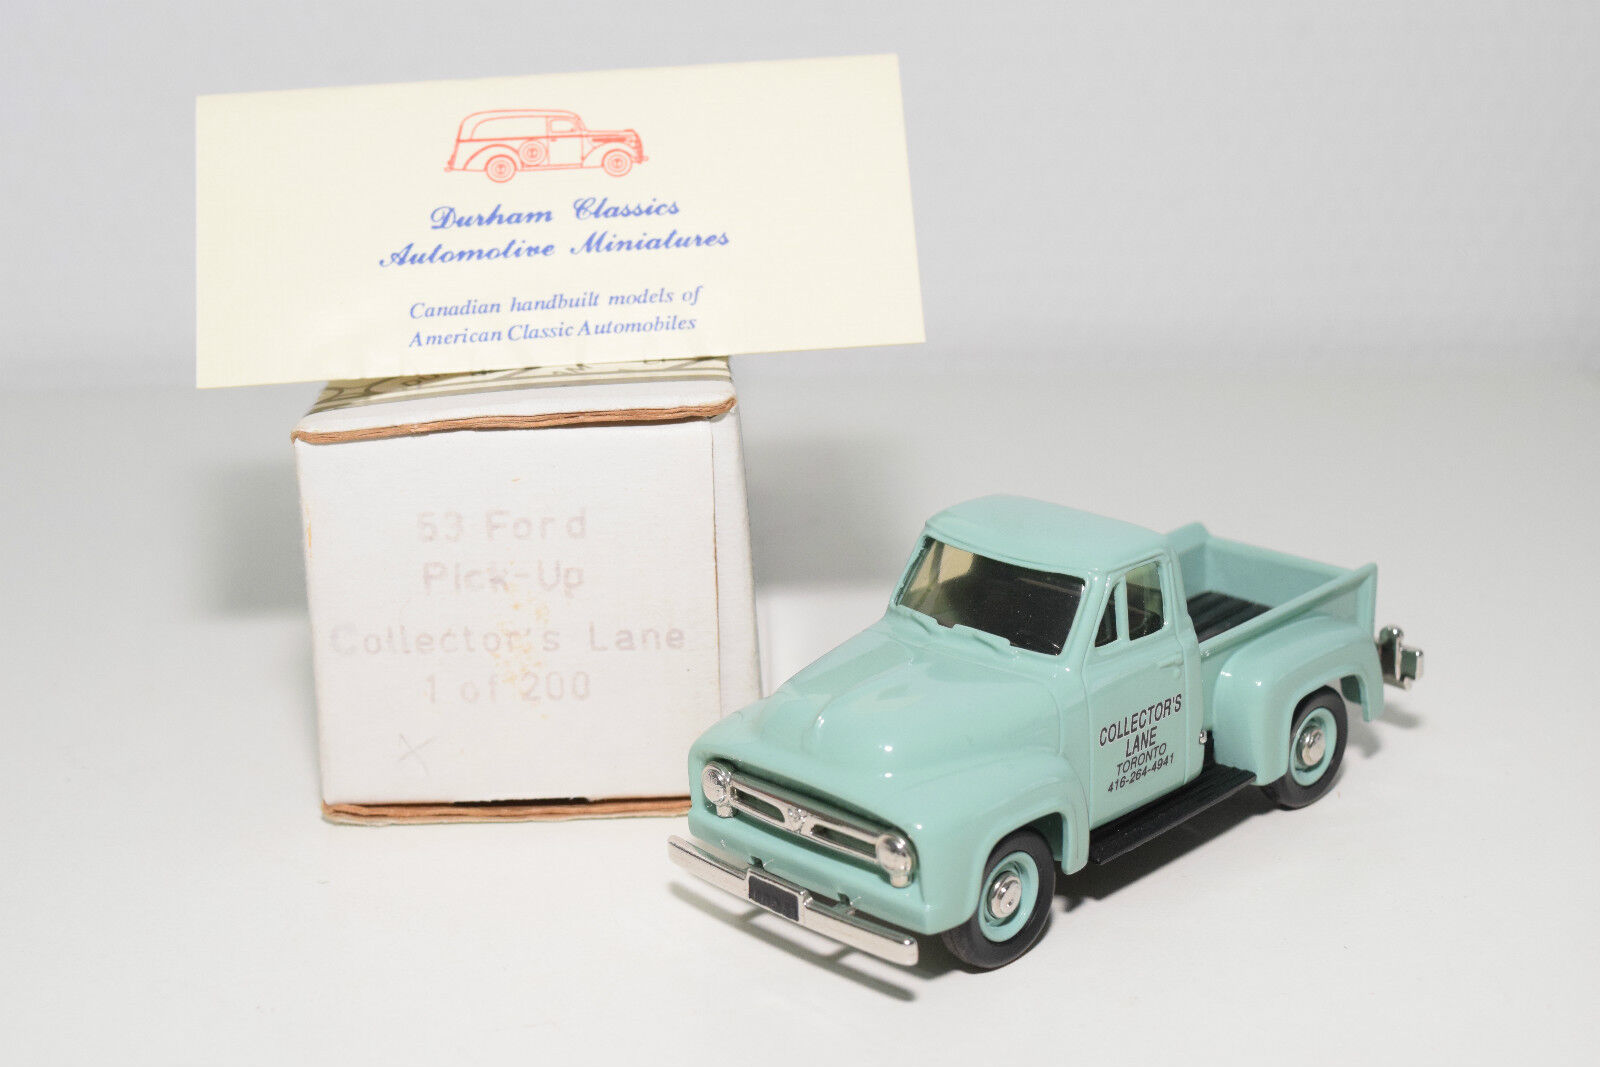 DURHAM DC-13 DC 13 FORD PICK UP COLLECTOR'S LANE MINT Verde MINT BOXED